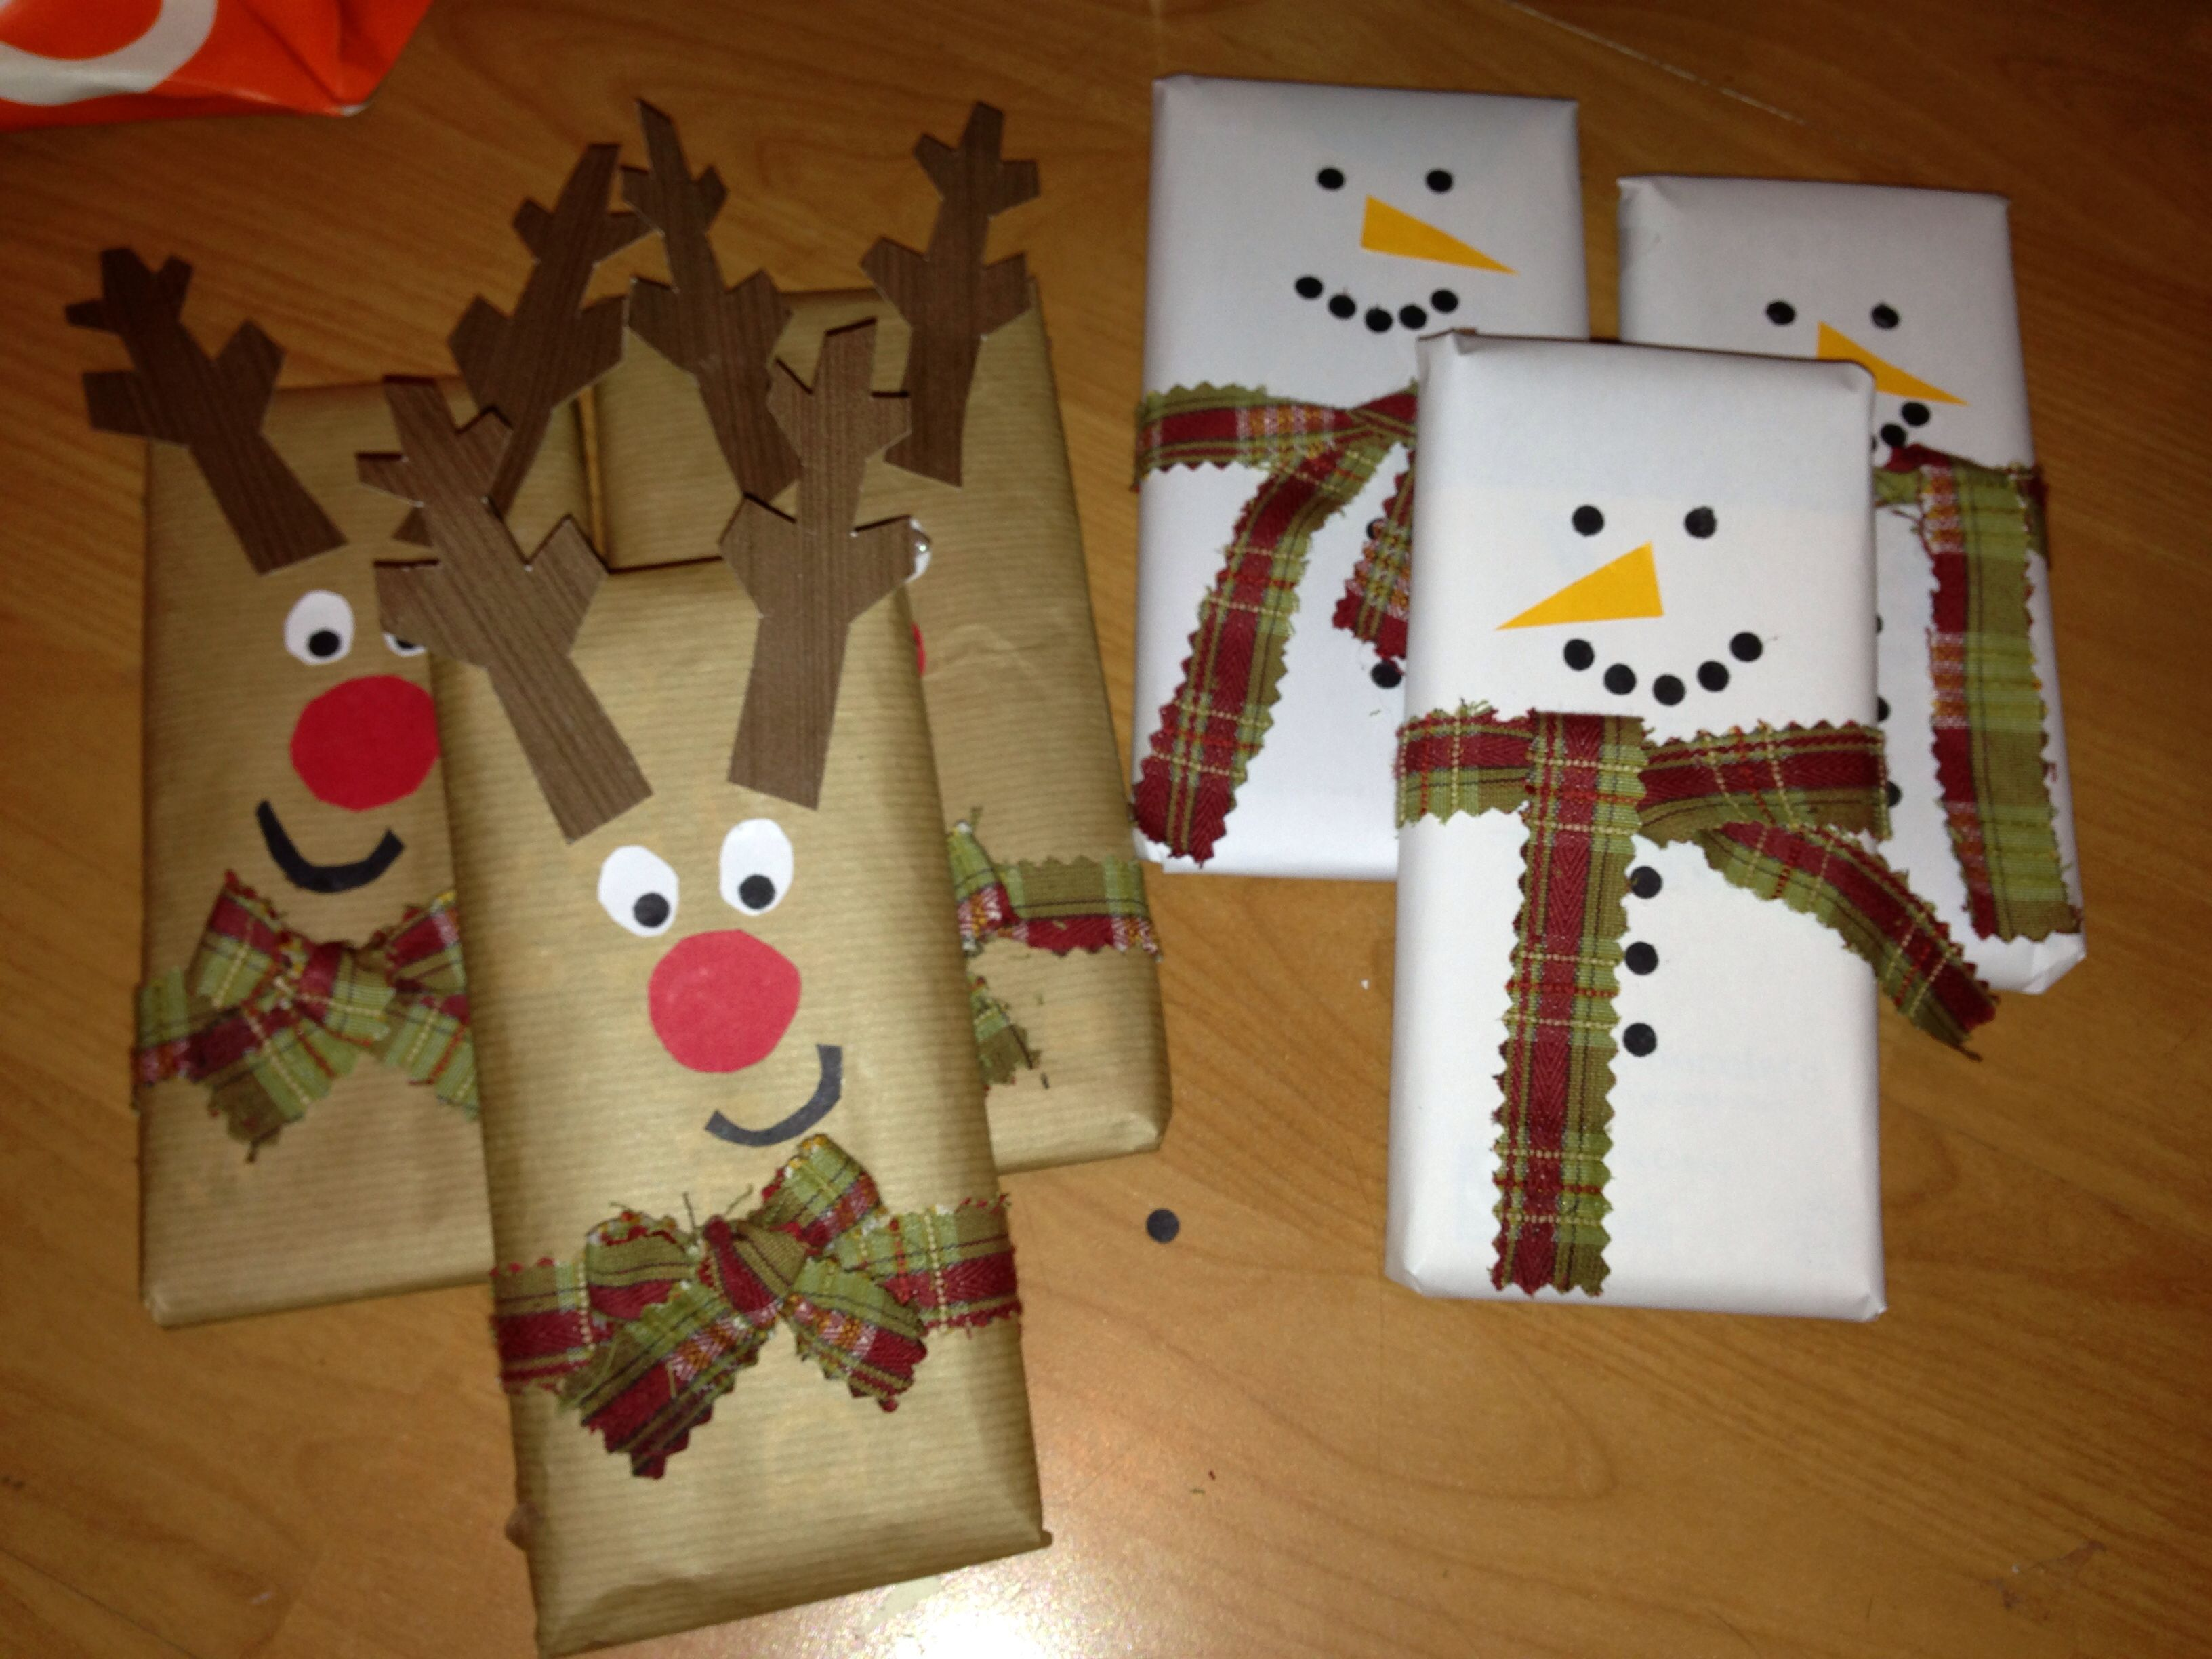 Christmas Chocolate Bar Wrapping Snowman And Reindeer Christmas Wrapping Christmas Crafts Christmas Gift Wrapping